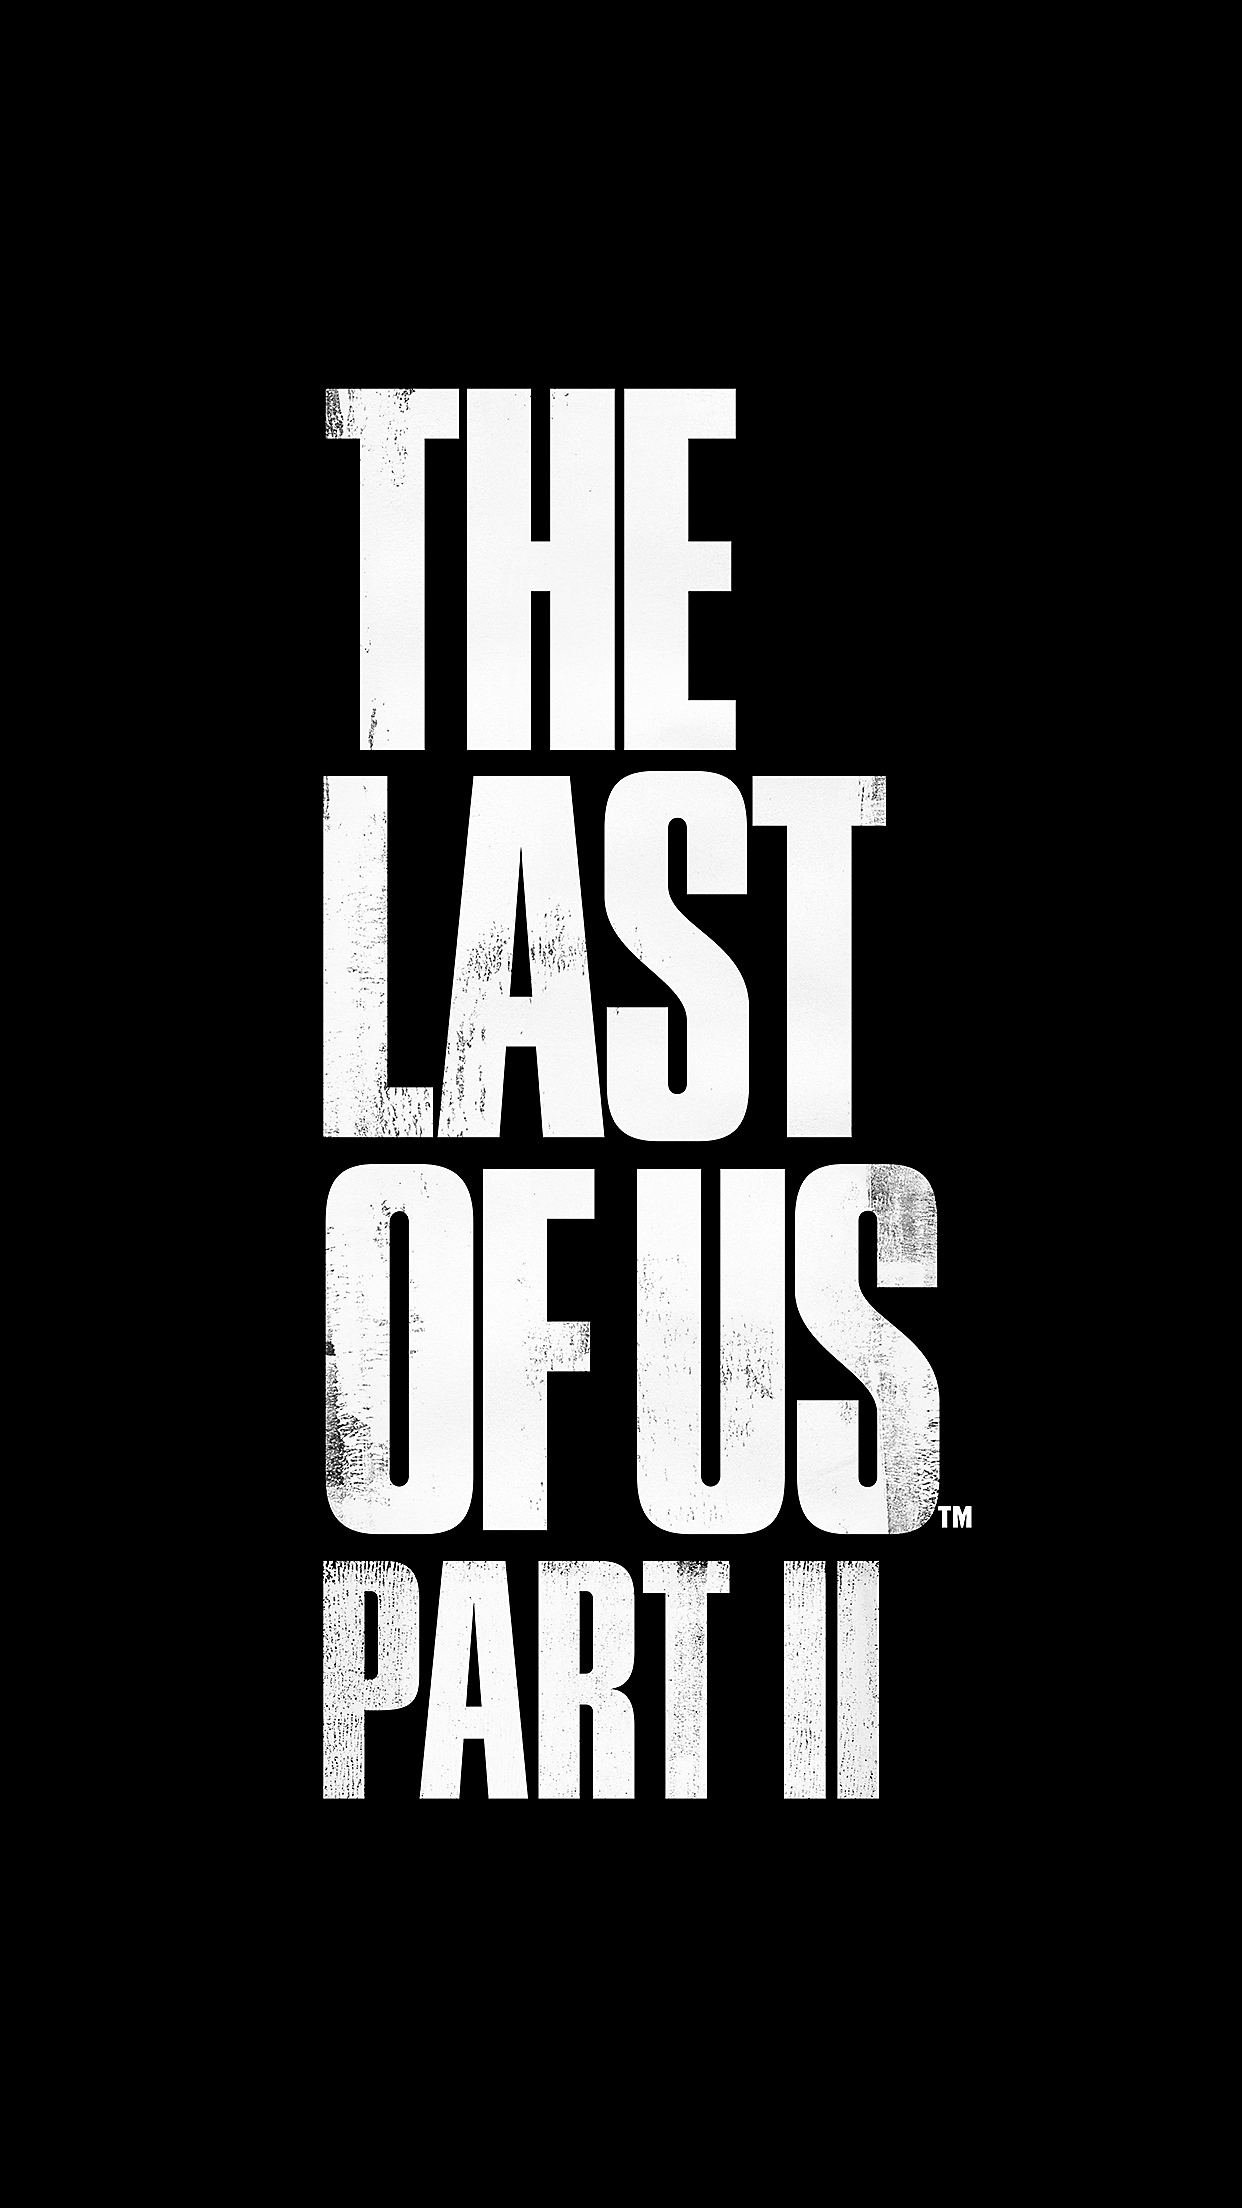 Logotipo de The Last of Us Part II - iPhone 8 Plus